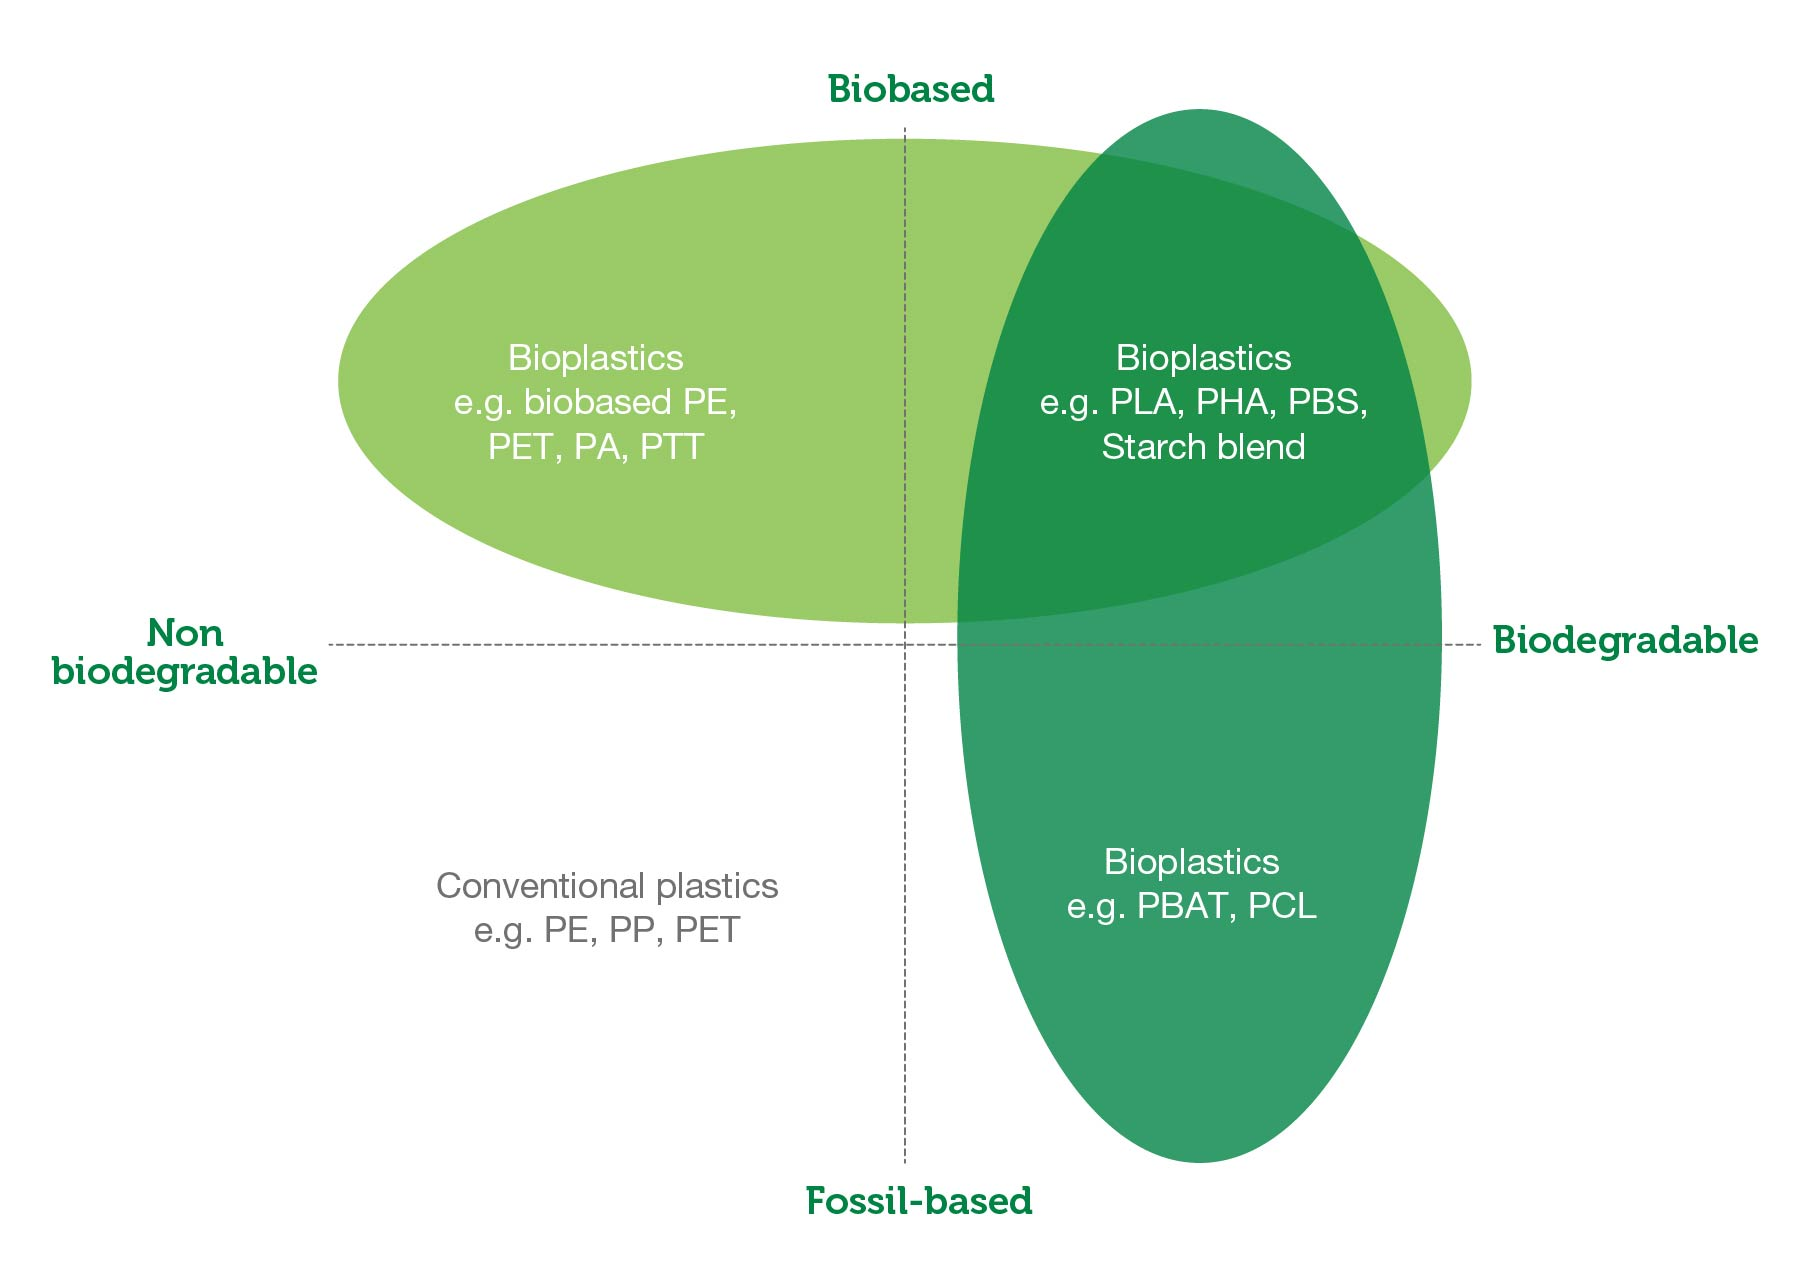 biobased, non biodegradable, biodegradable and fossil-based diagram